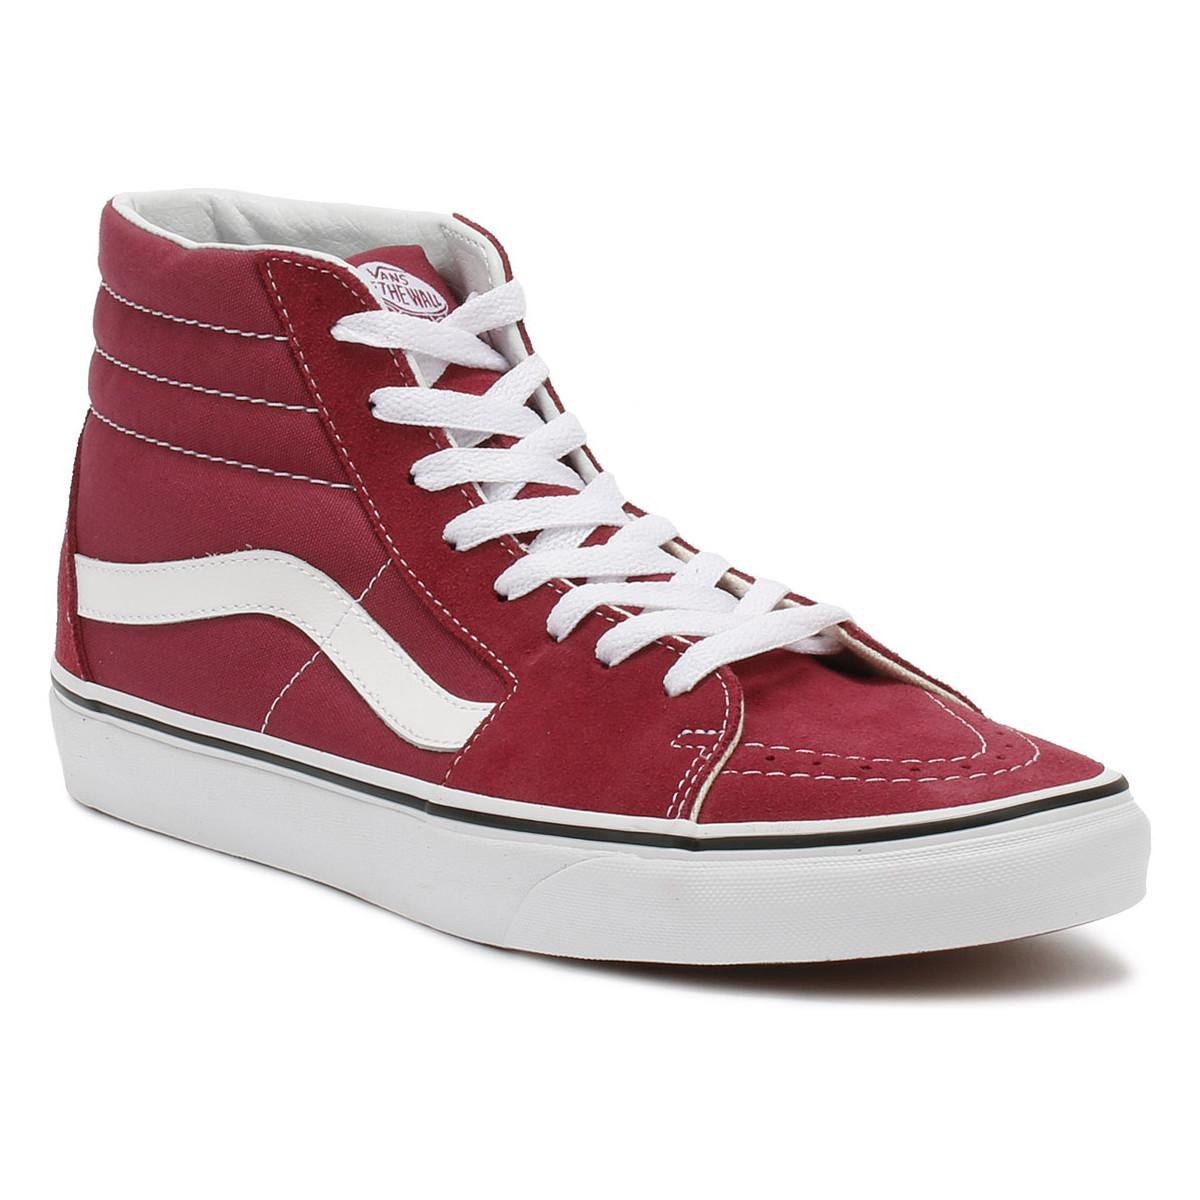 297583a005b Vans Dry Rose Red   True White Sk8-hi Trainers Women s Shoes (high ...